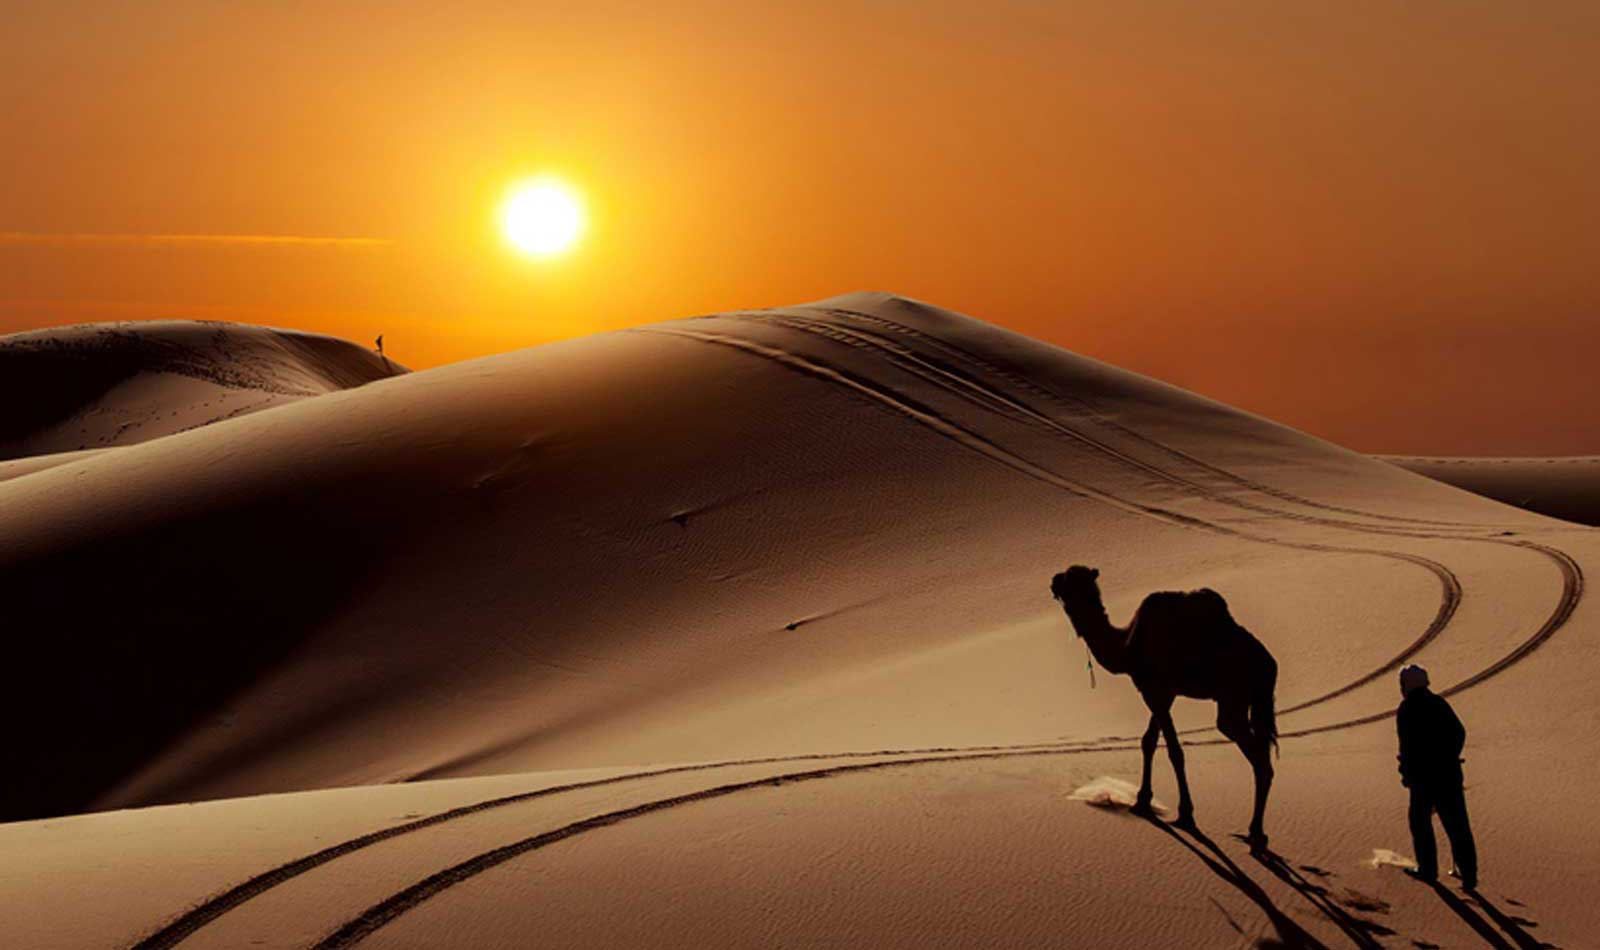 camel is walking - things to do in Morocco